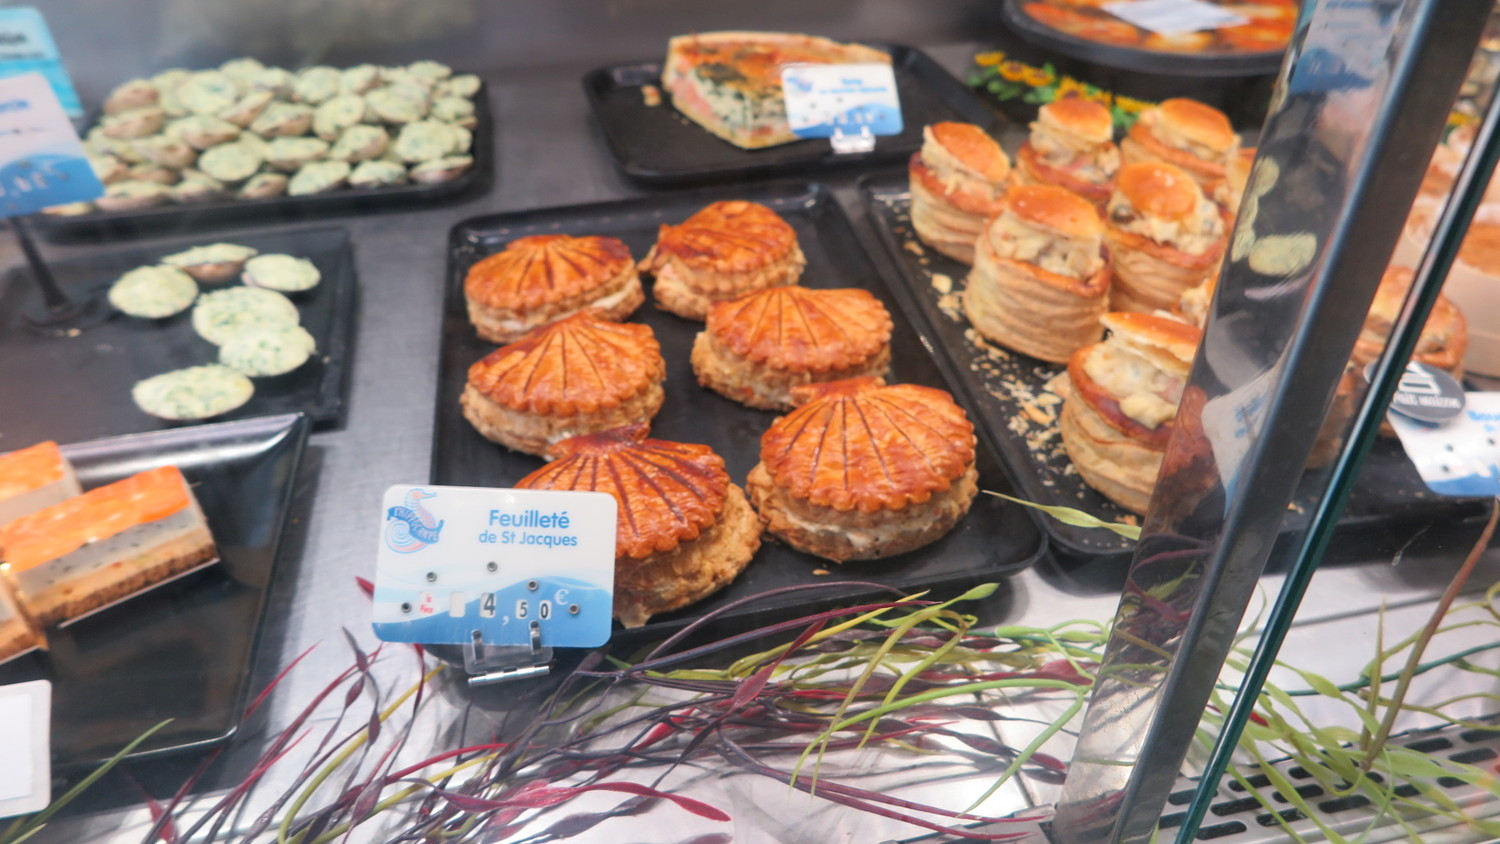 Food to eat in Normandy. Pies stuffed with sea food